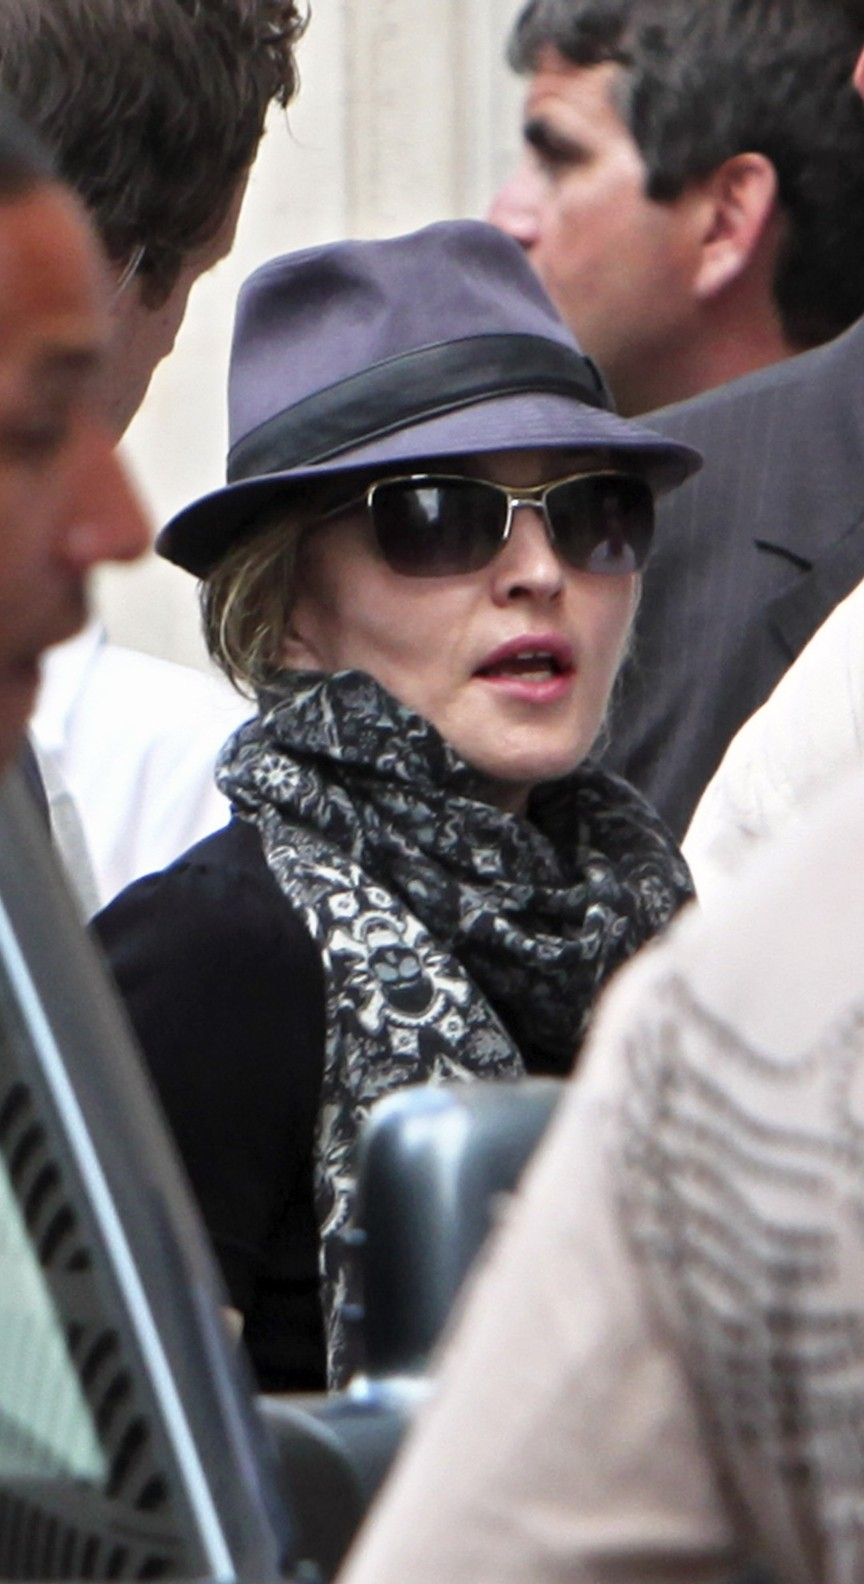 20100731-madonna-arrives-hotel-saints-peres-abmad-exclusive-09.jpg